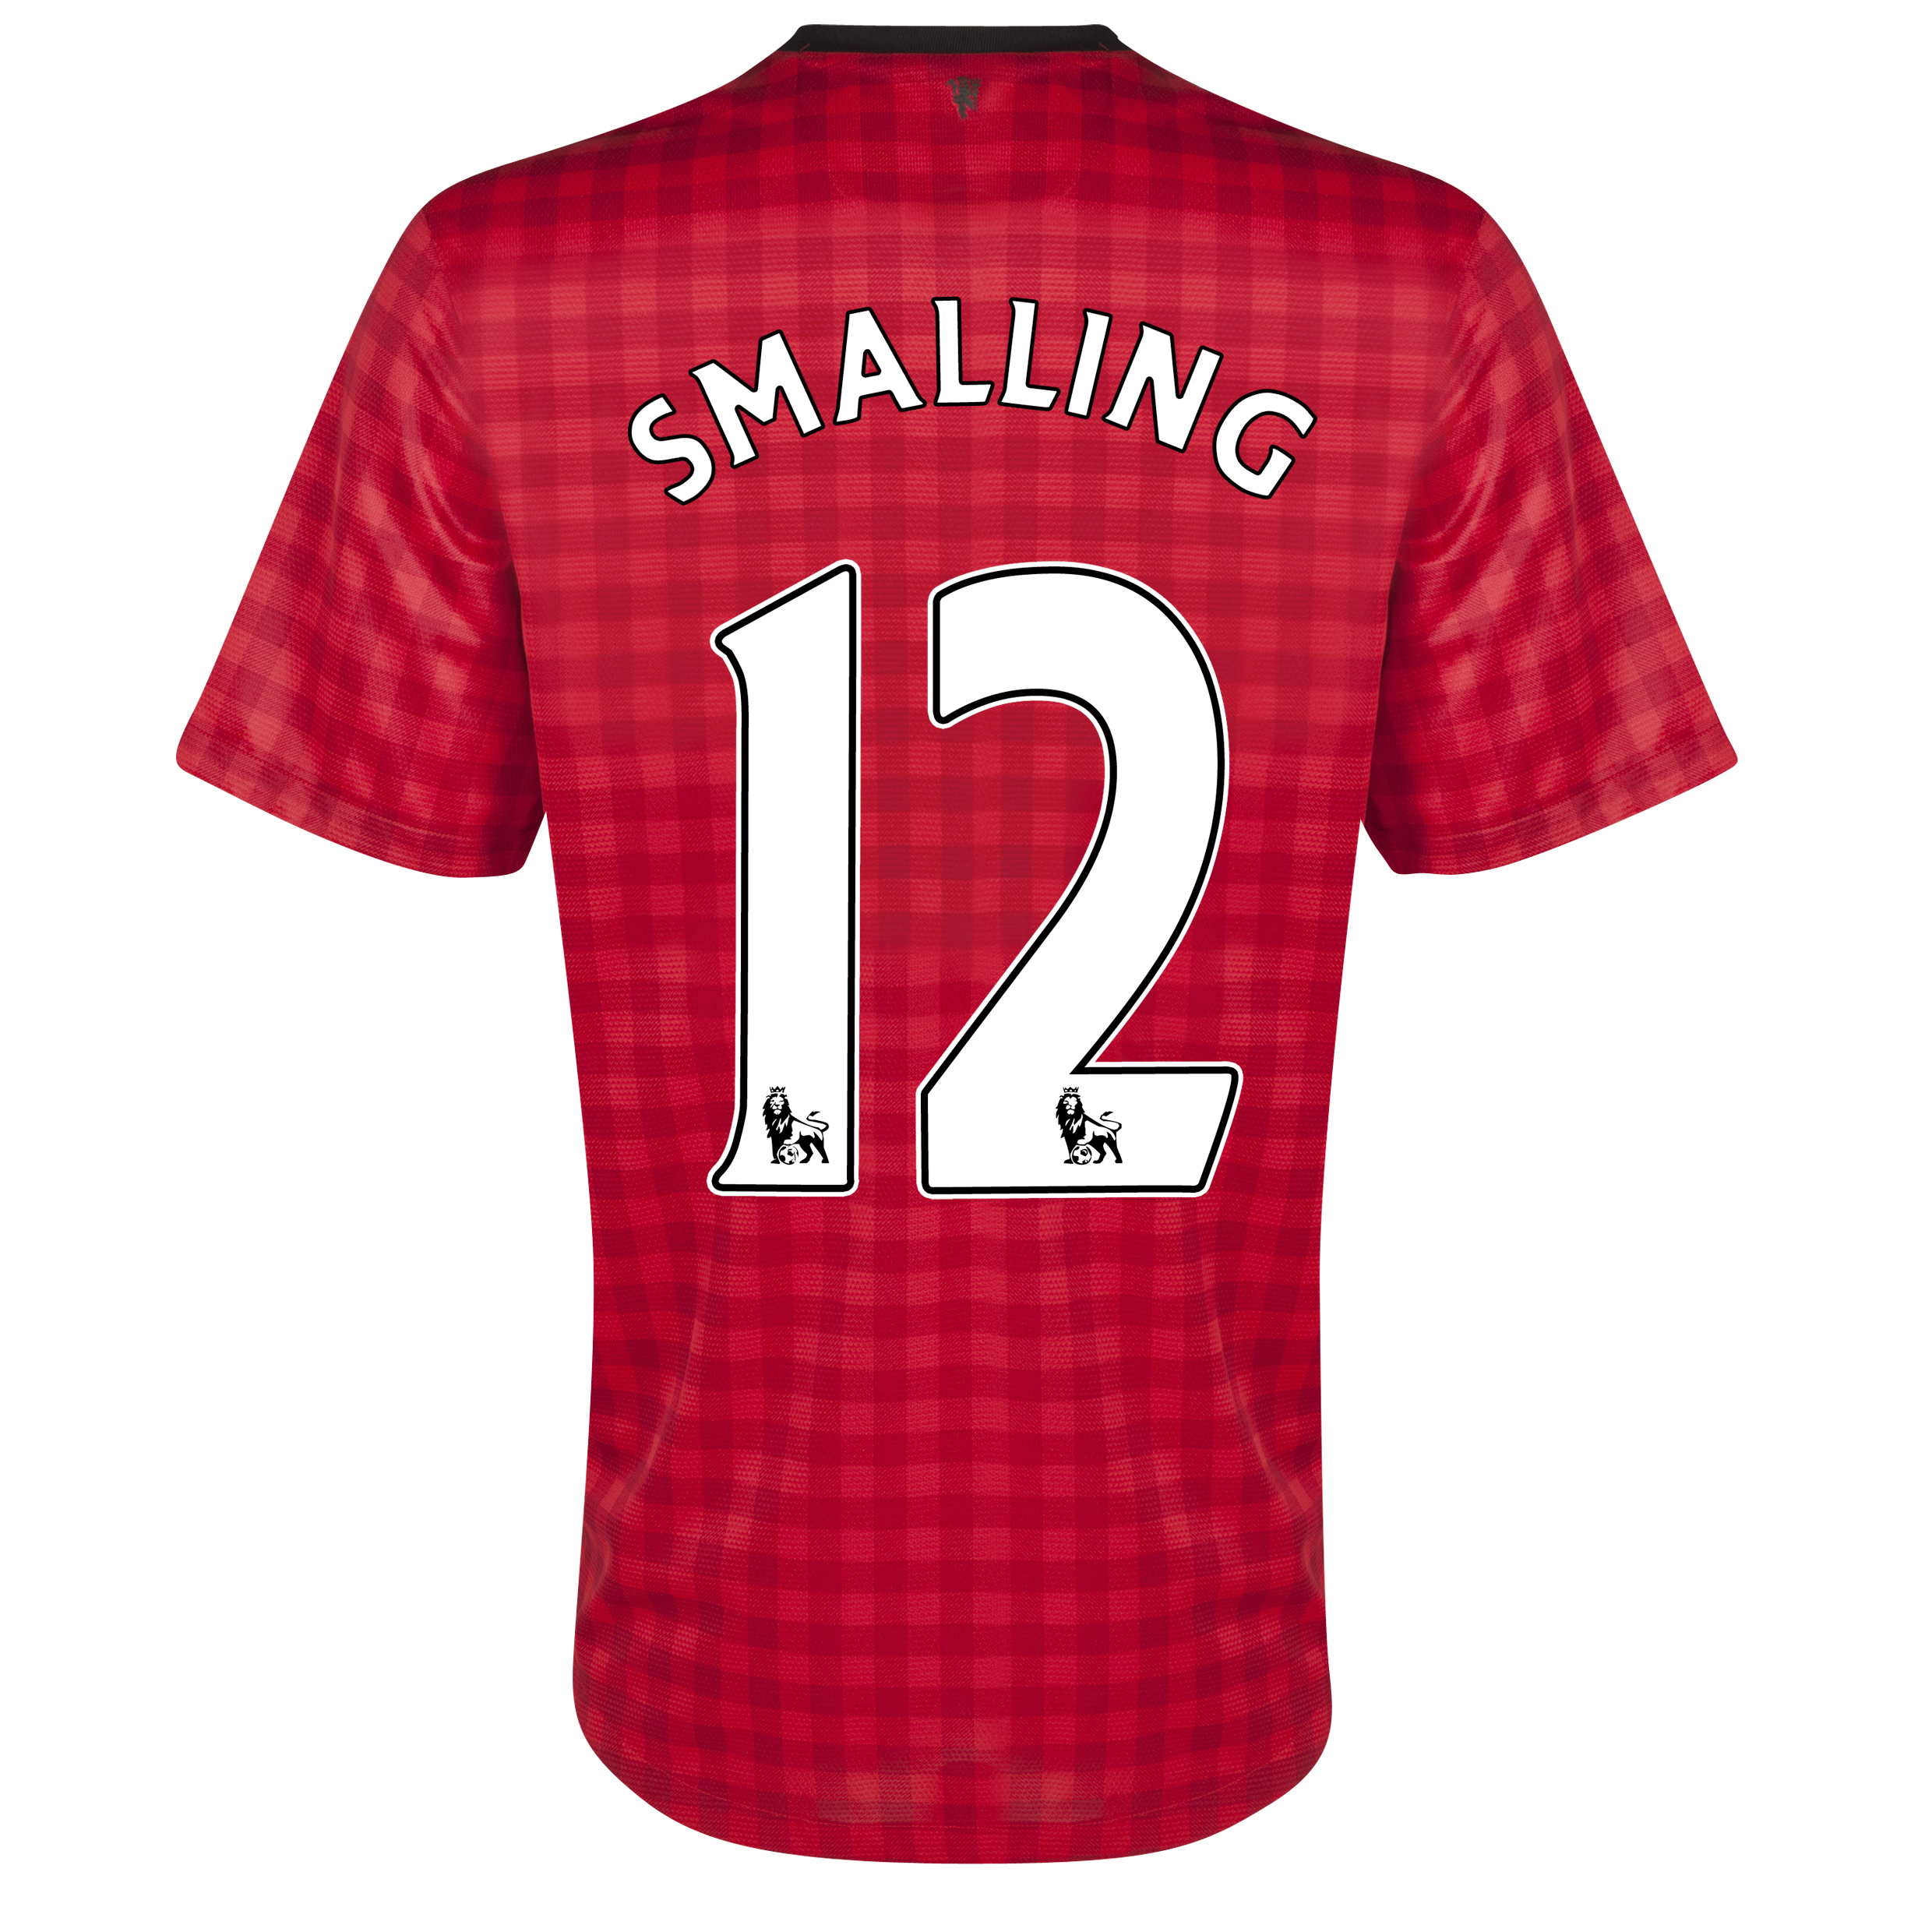 Manchester United Home Shirt 2012/13 with Smalling 12 printing